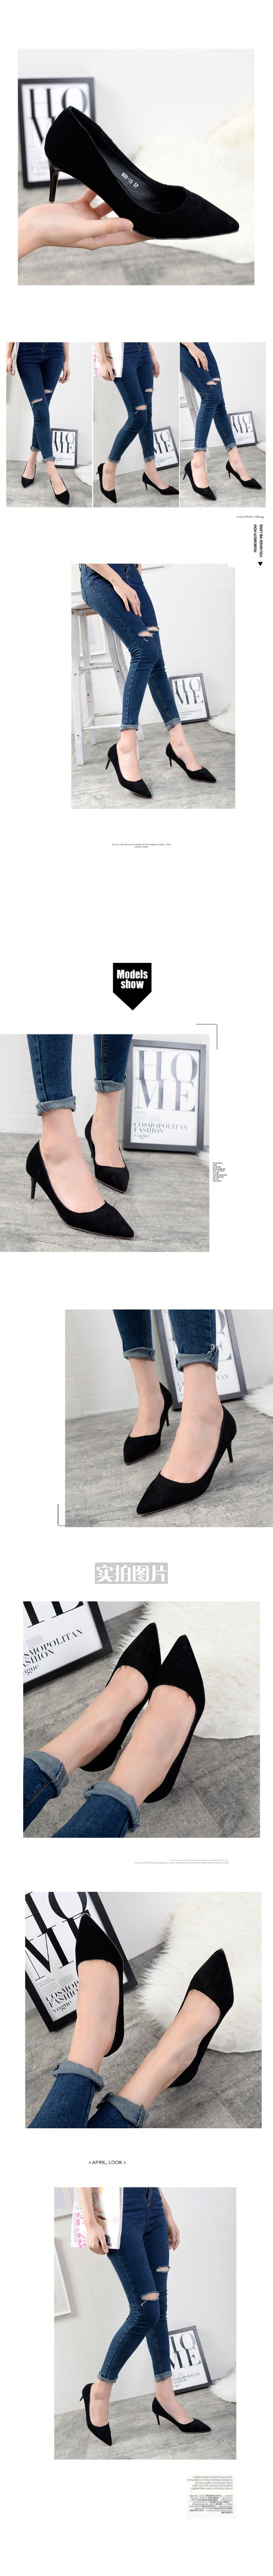 2016 New Brand Fashion Women Pumps Red Bottom Thin High Heel Pumps Shoes Women Pointed Toe Sexy Party Wedding Woman Shoes ZK2.5